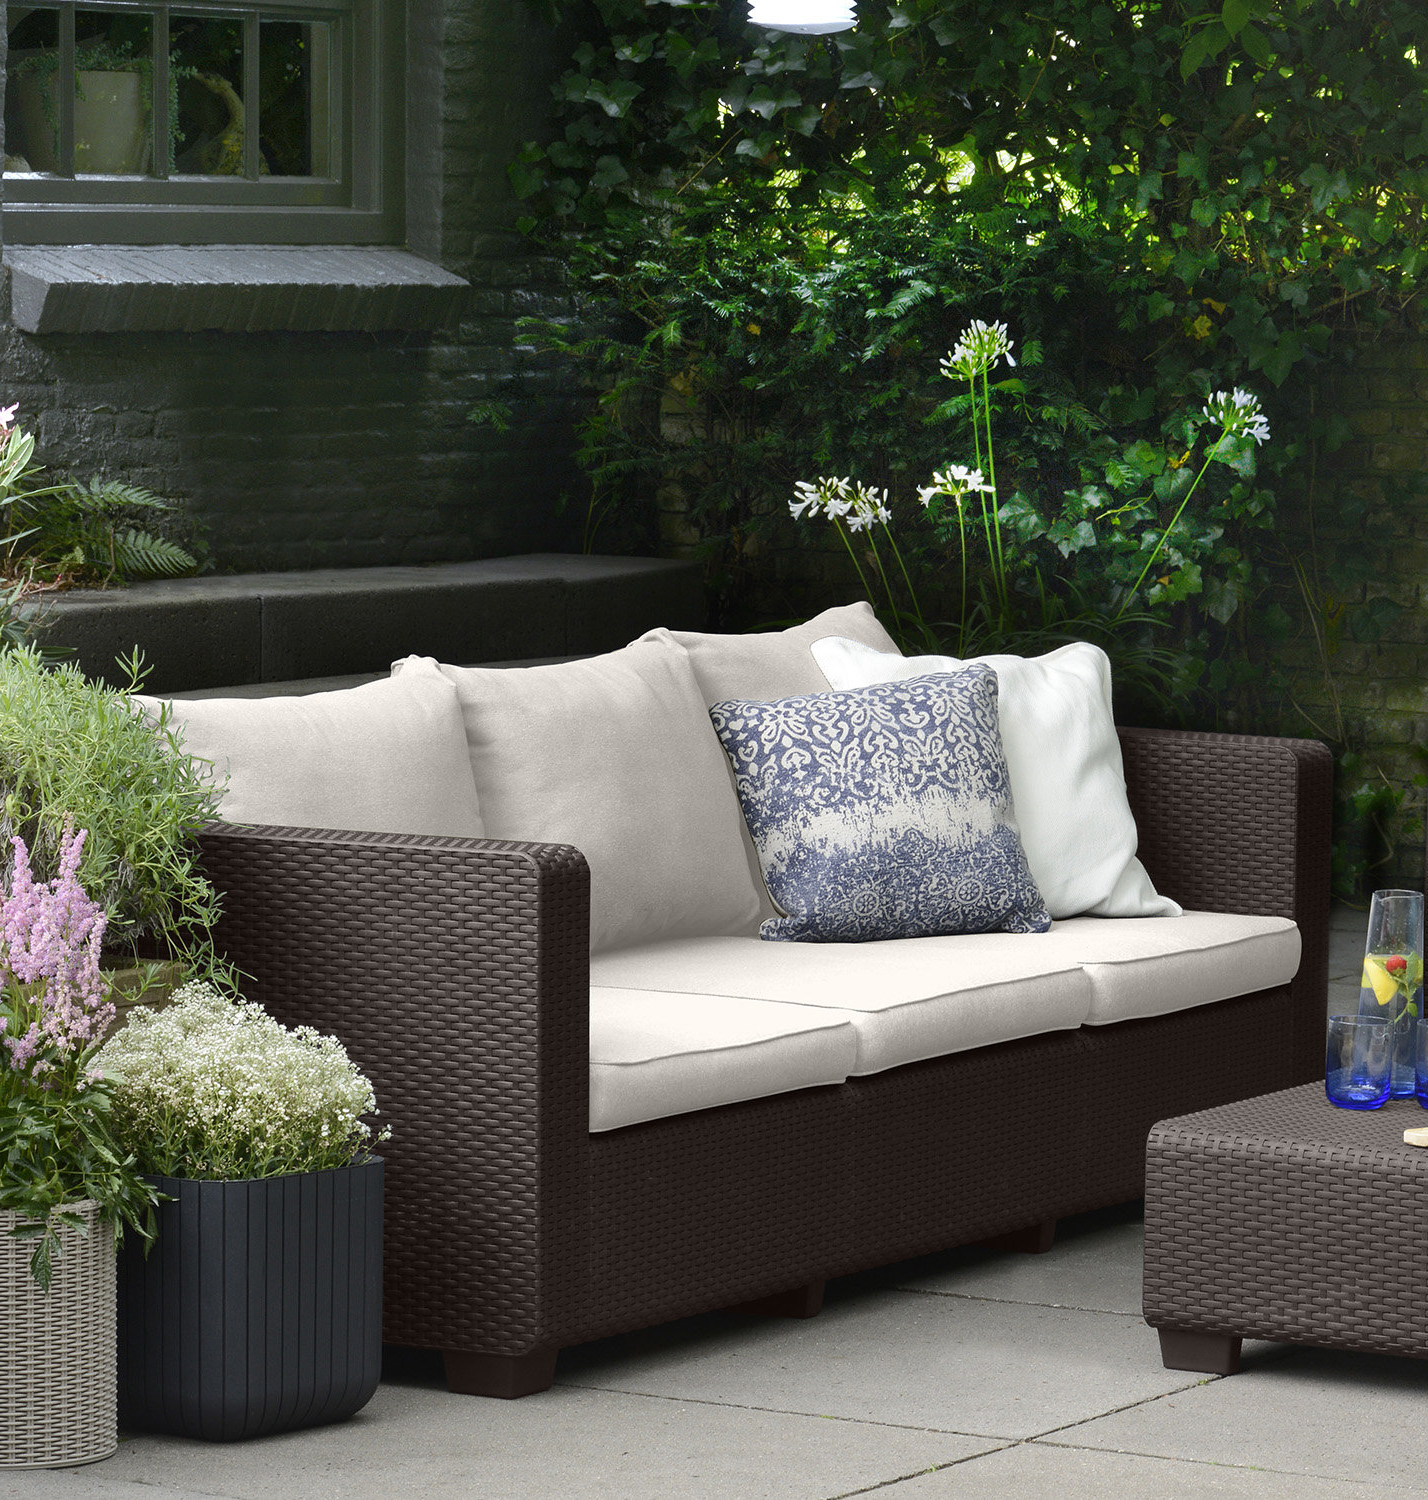 Silloth Patio Sofas With Cushions Regarding Current Halloran Patio Sofa With Sunbrella Cushions (View 13 of 20)